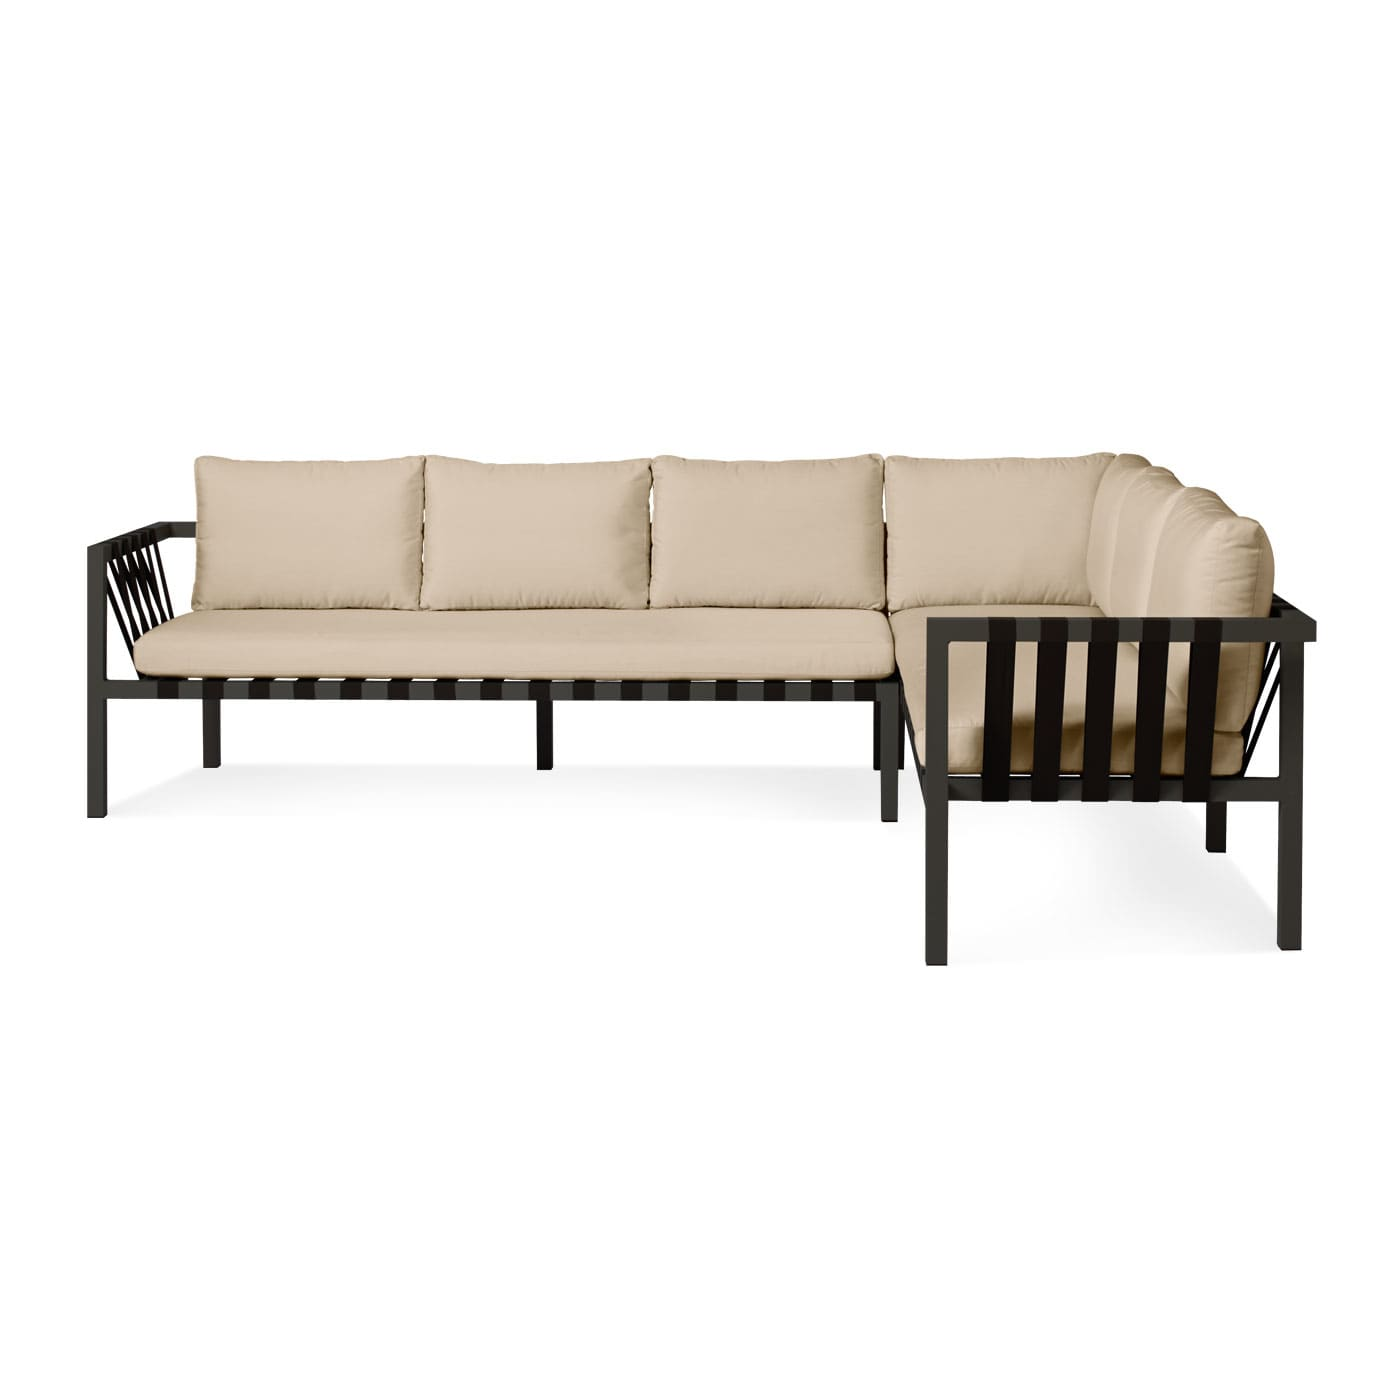 Jibe Outdoor Right Sectional Sofa Modern Outdoor Seating Blu Dot